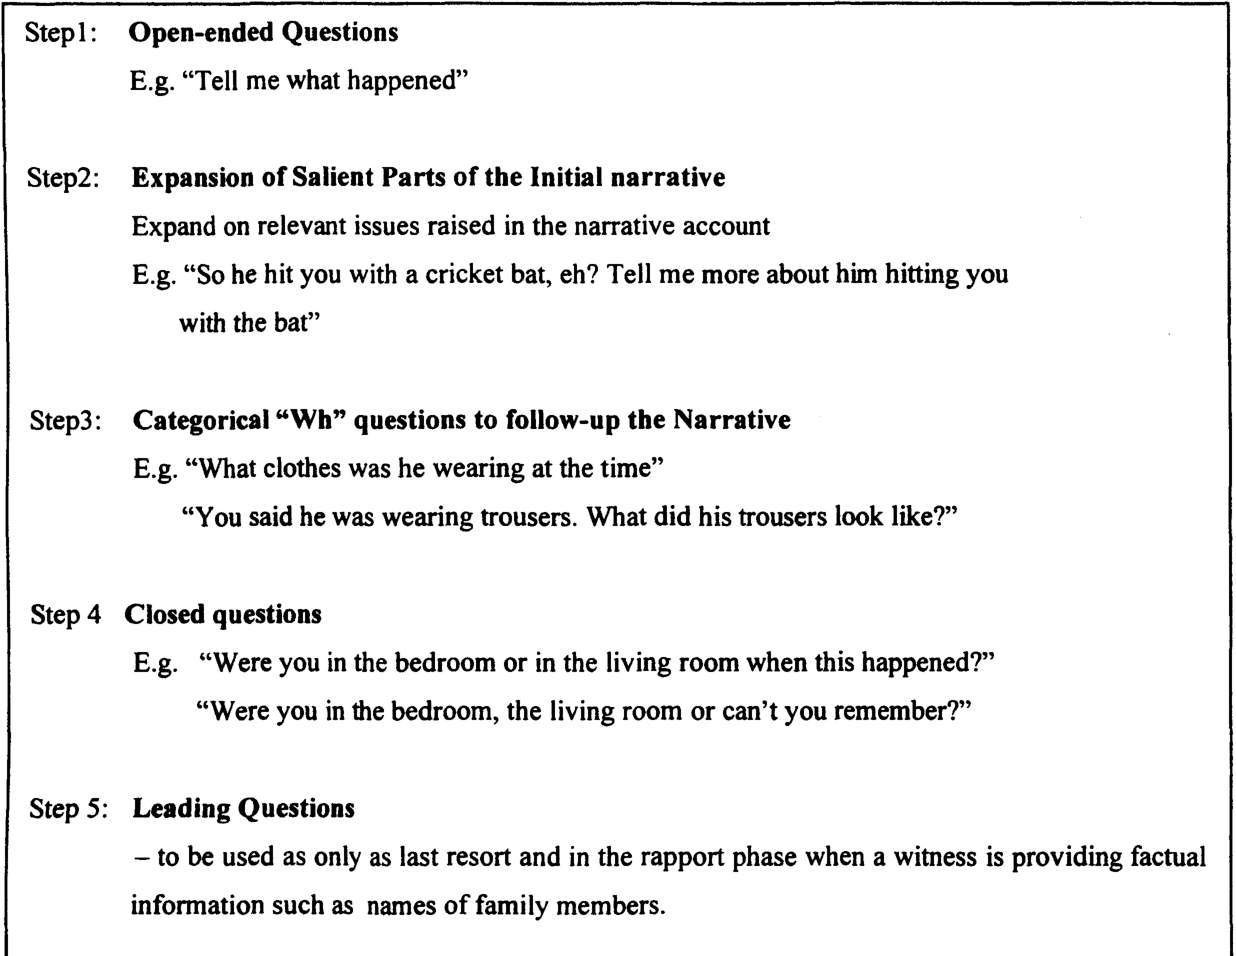 Pdf Are You Listening To Me Responding To And Constructing Meaning From Children S Accounts In Forensic Interviews Semantic Scholar